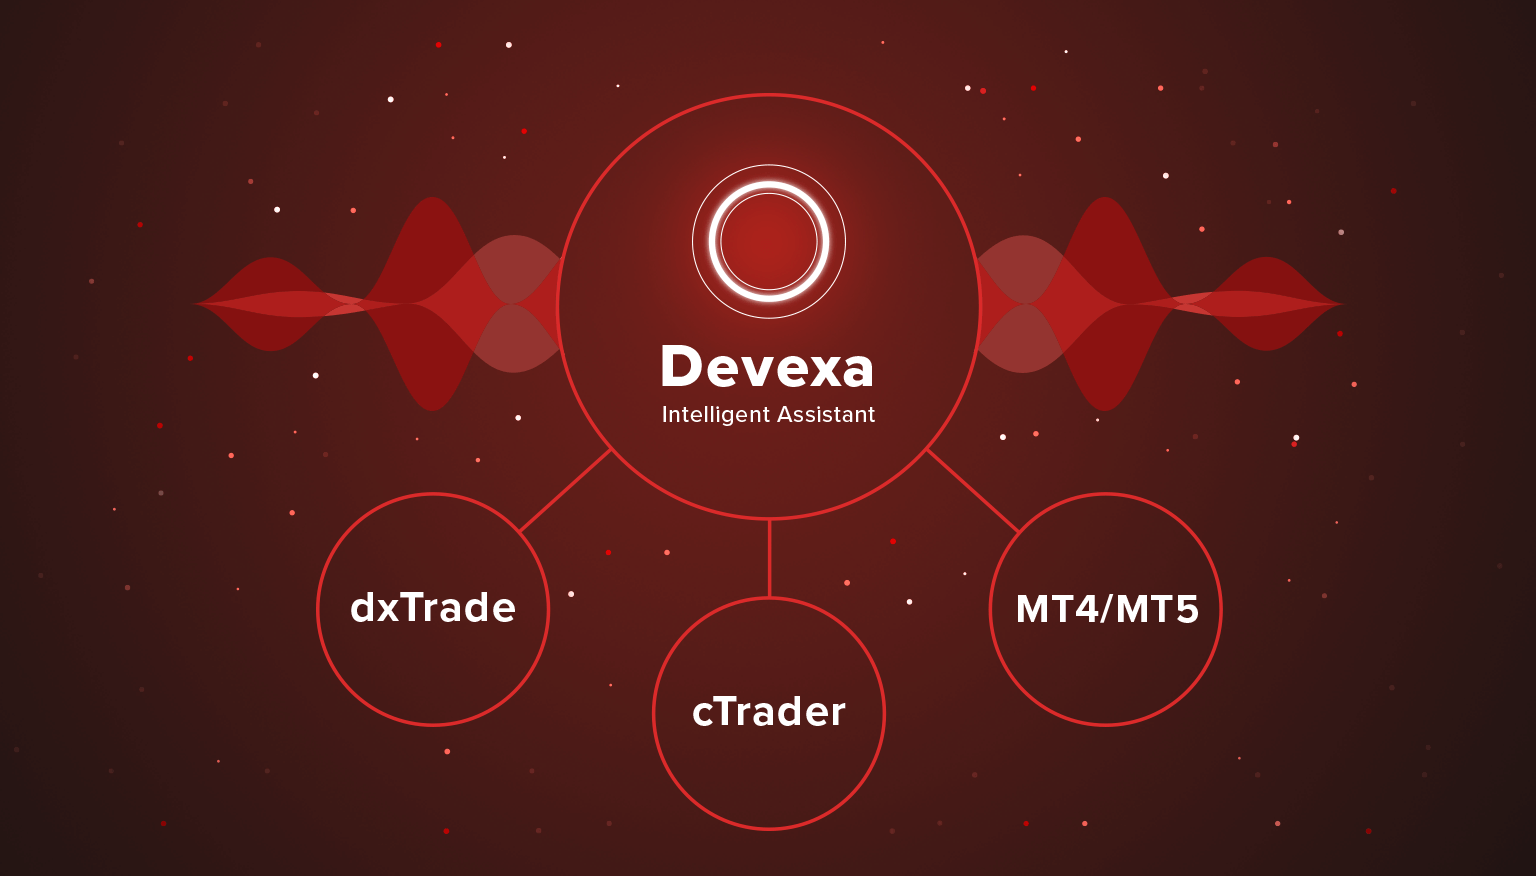 Devexa Chatbot is available for cTrader Brokers, MT4 and MT5 Brokers